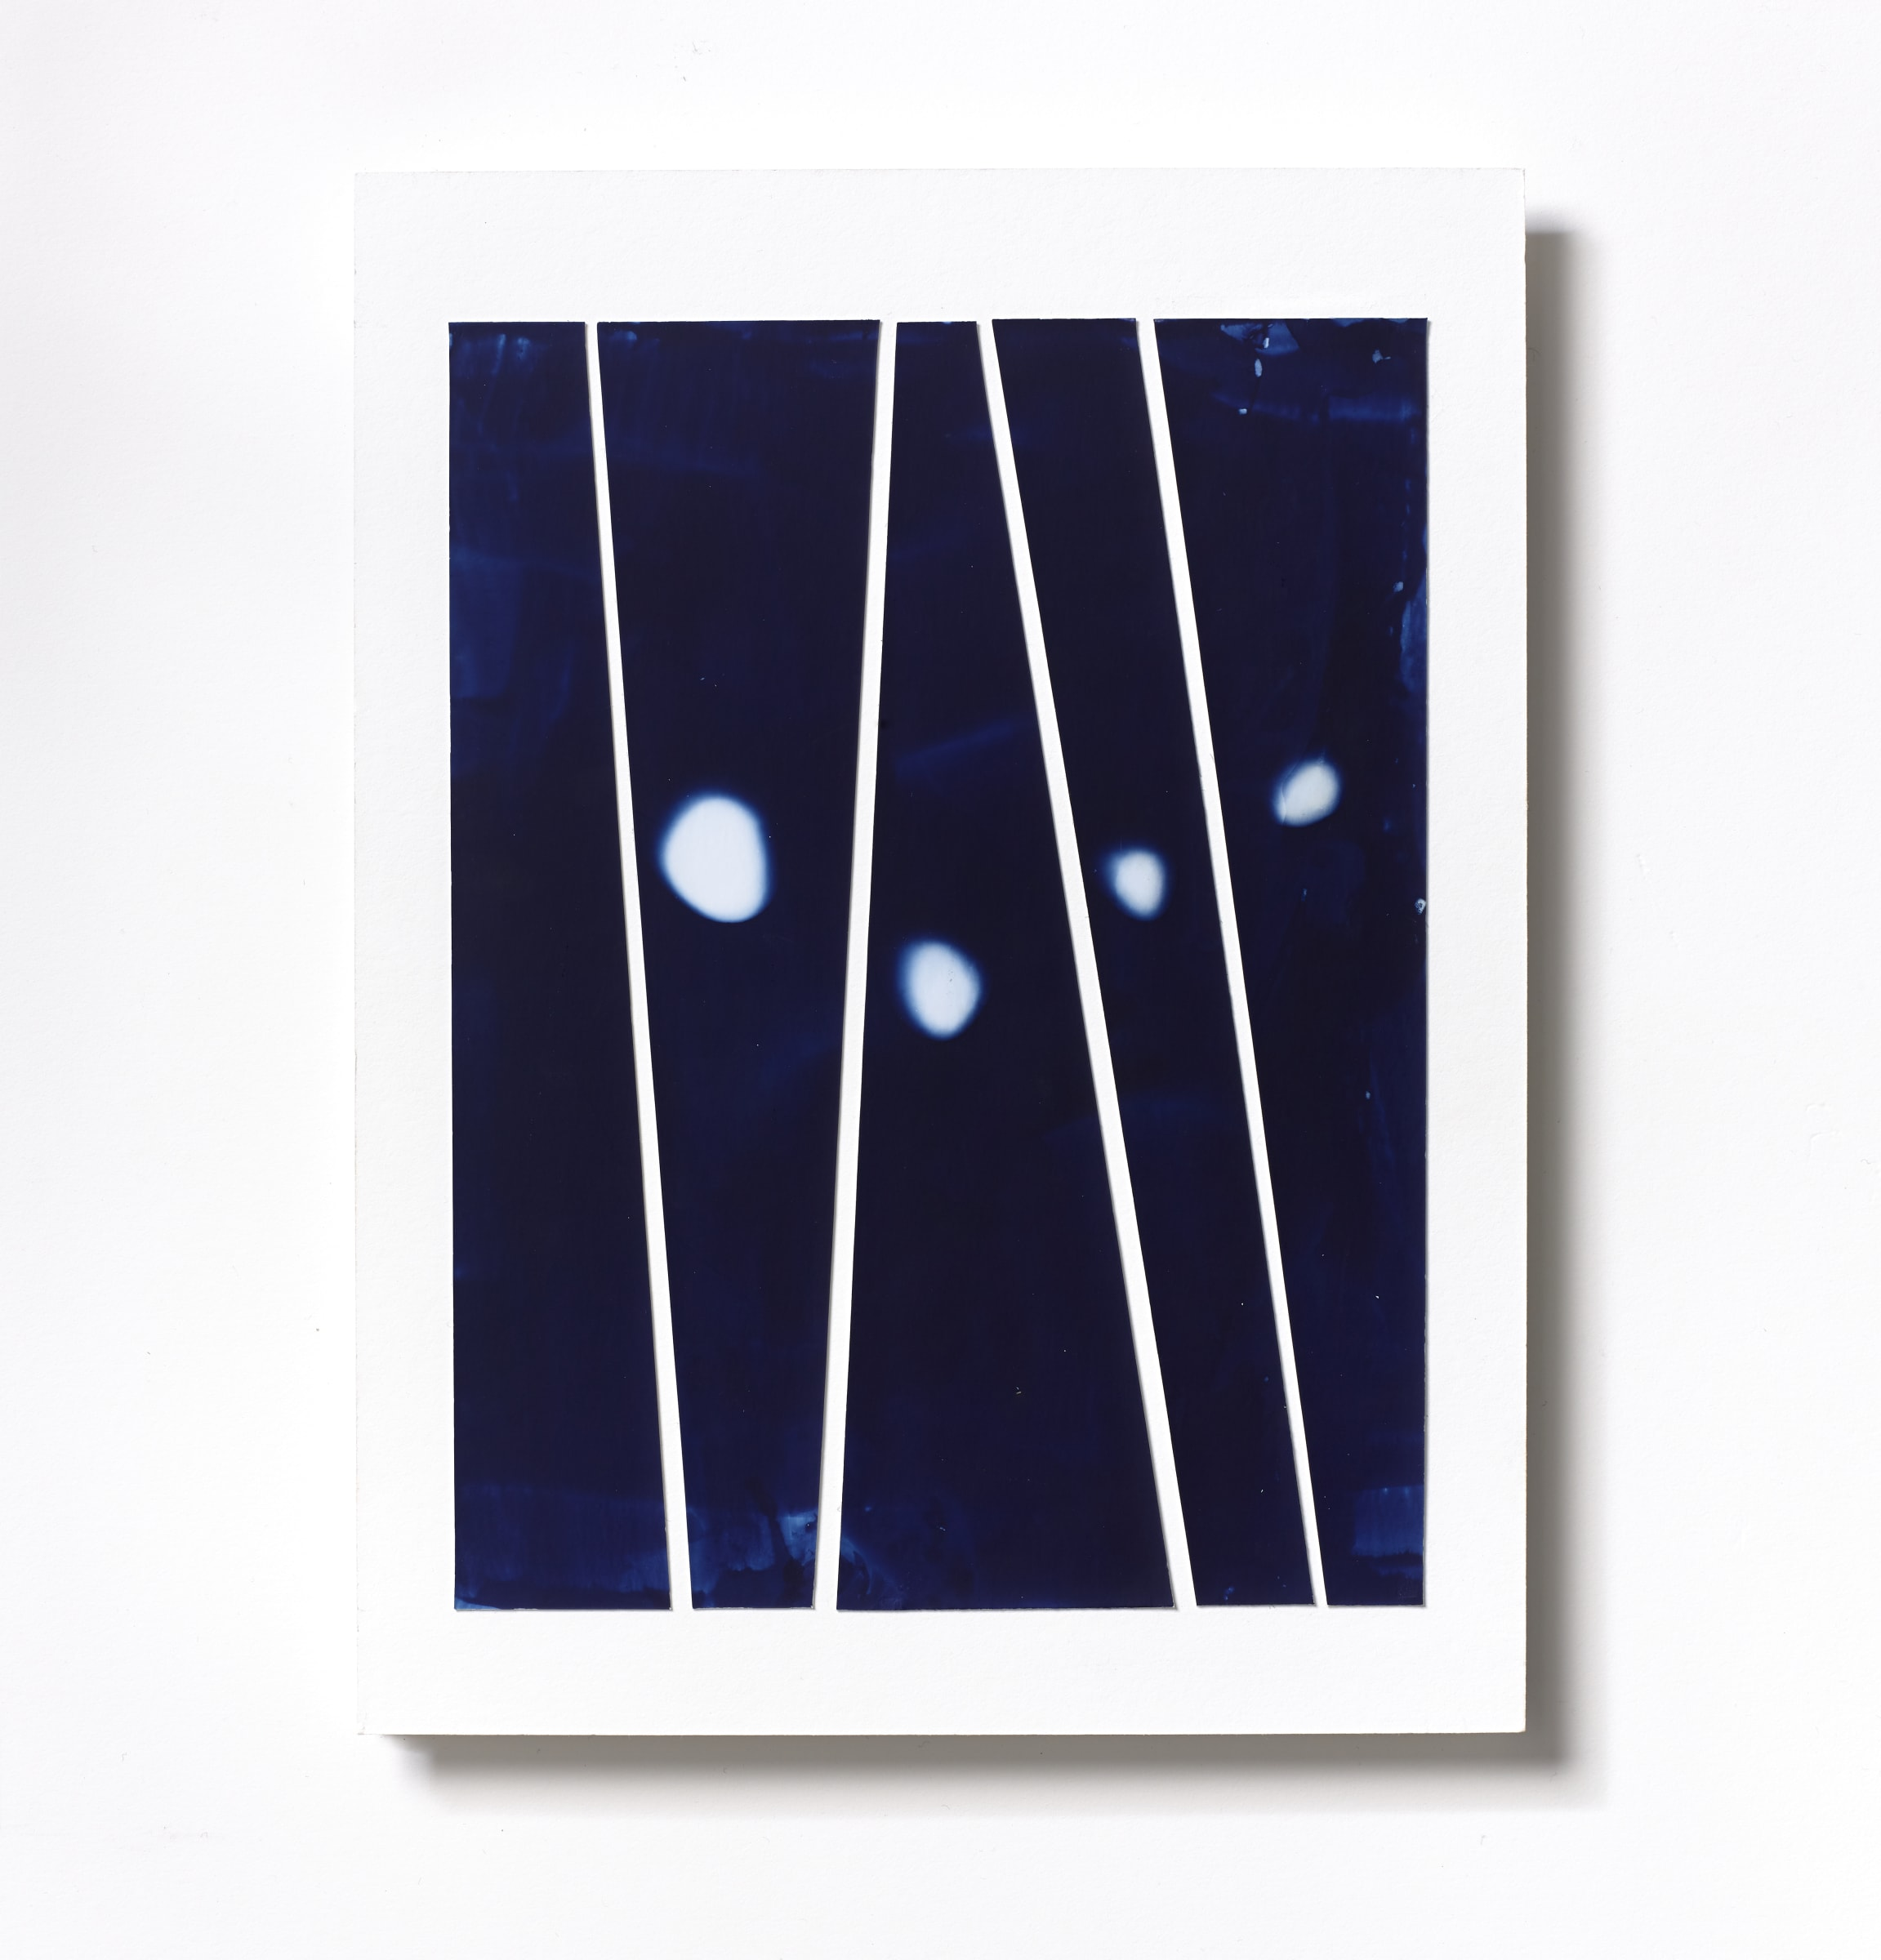 """<span class=""""link fancybox-details-link""""><a href=""""/content/feature/118/artworks558/"""">View Detail Page</a></span><div class=""""medium"""">Cyanotype Collage of five hand-painted 9 7/8"""" x 1/4"""" cyanotype photograms on a 12 x 9 inch 8-ply museum board.<br /> Print only<br /> Unique</div> <div class=""""dimensions"""">30.5 x 22.9 cm<br /> 12 x 9 in</div>"""